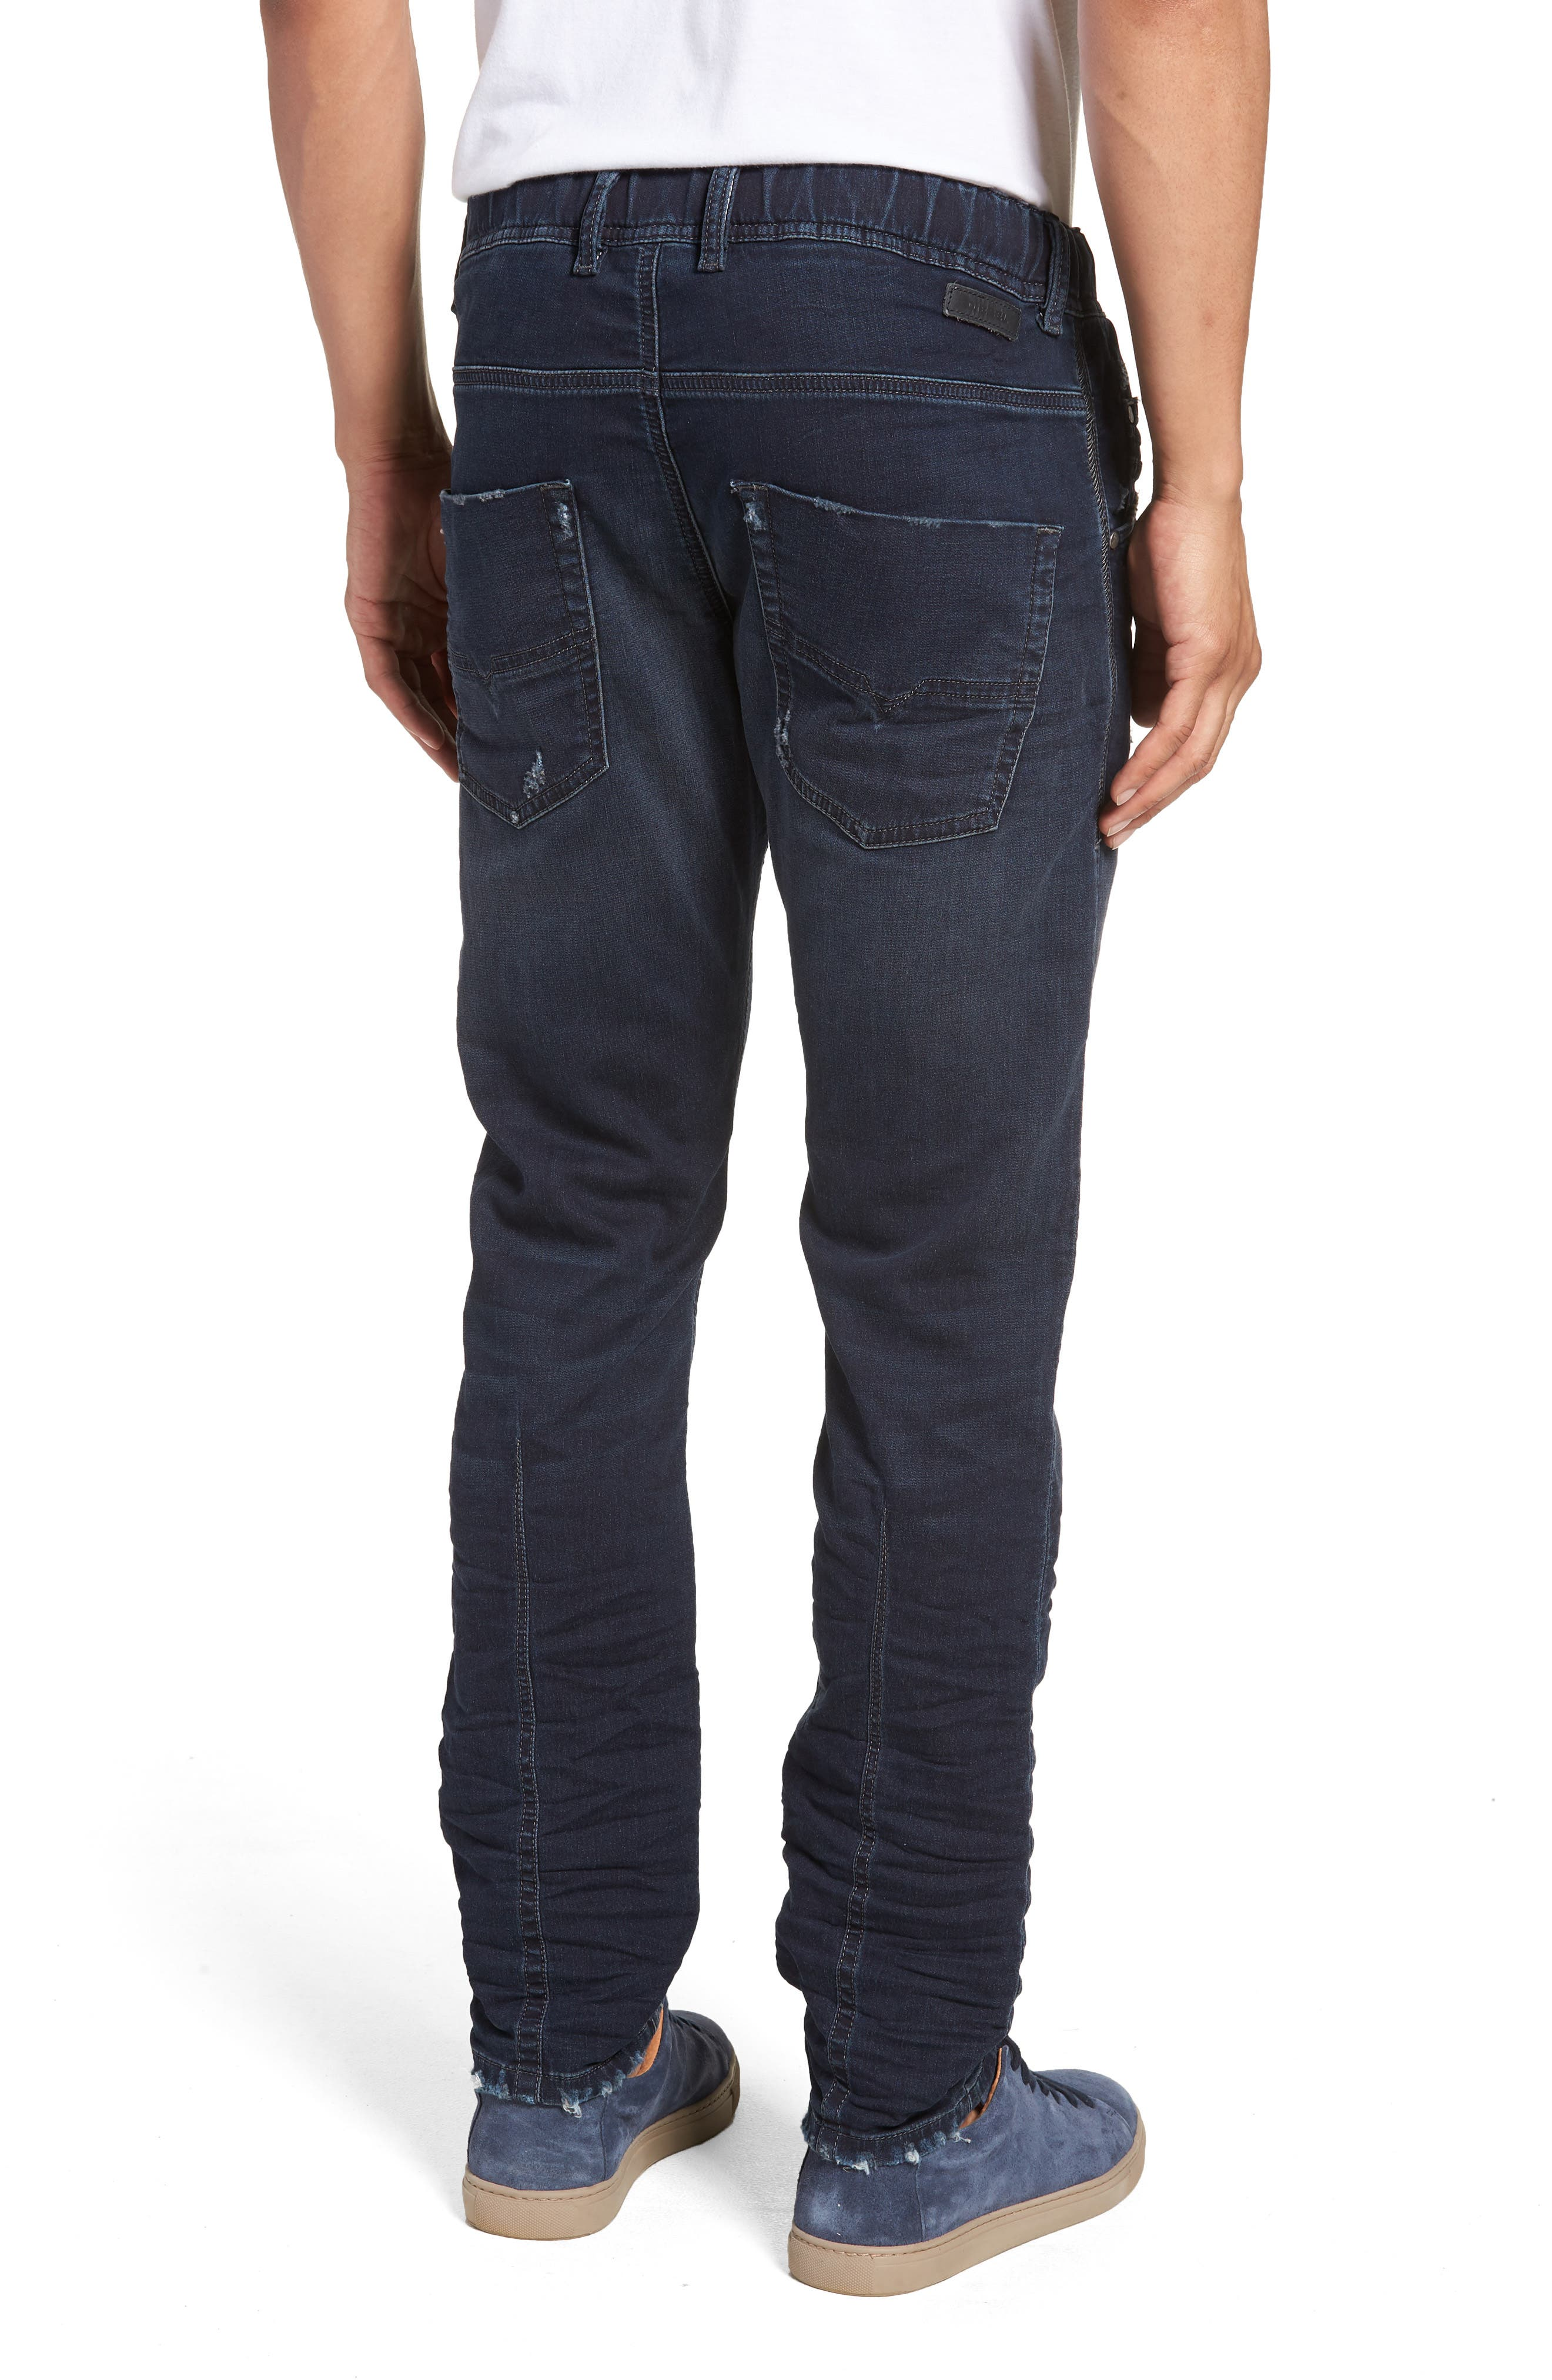 Krooley Skinny Slouchy Fit Jeans,                             Alternate thumbnail 2, color,                             0699W